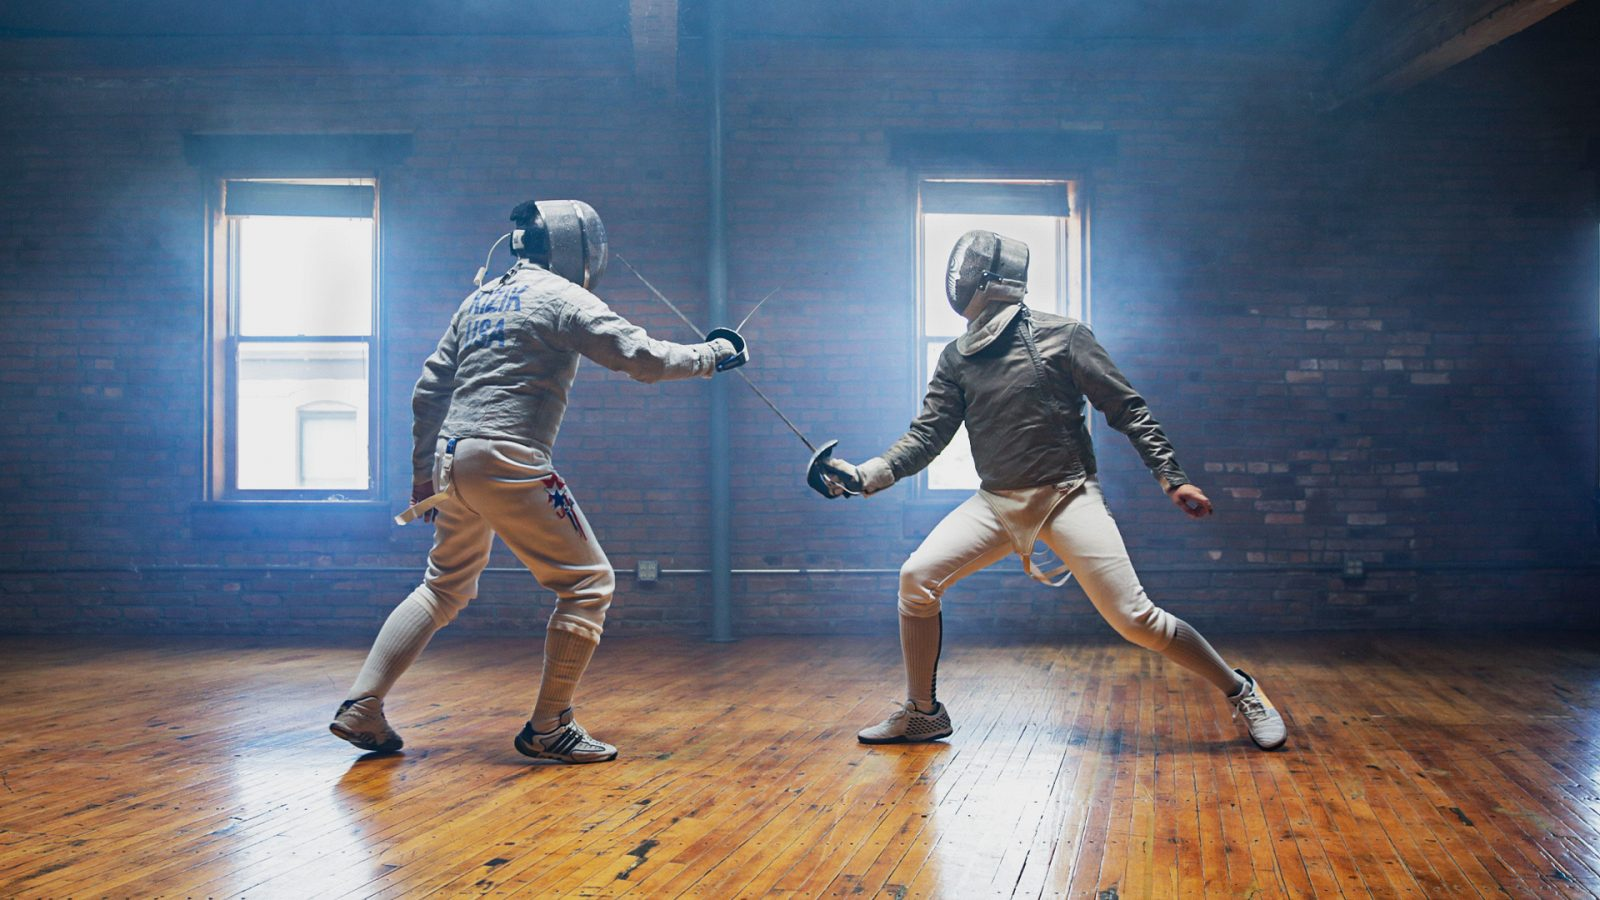 Scene from video: two athletes fencing